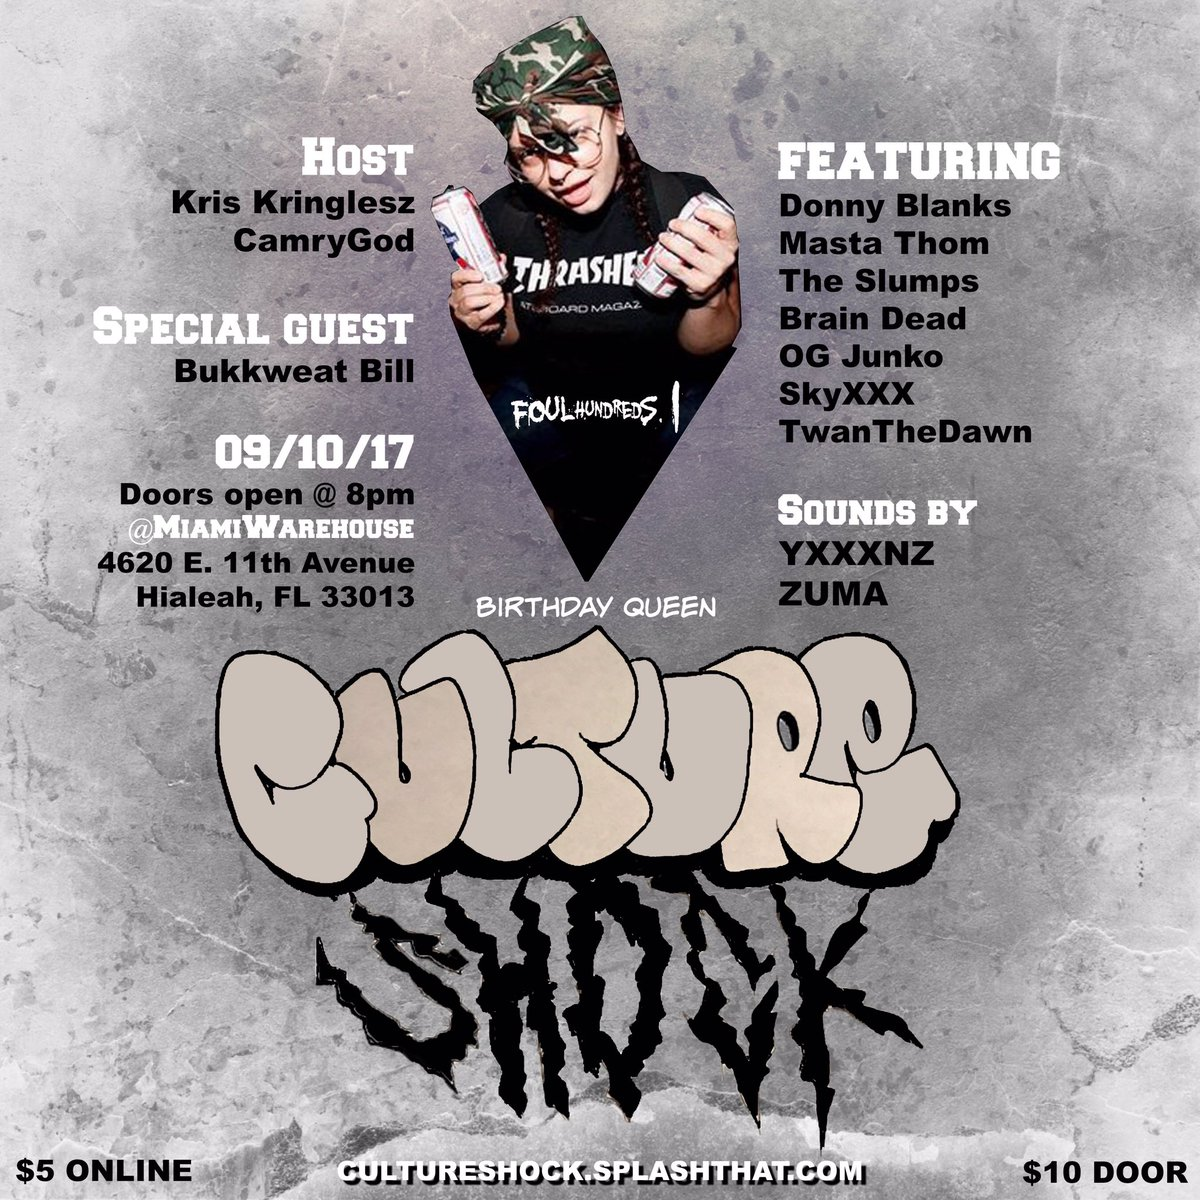 #CULTURESHOCK 9/10 @ MIAMI WAREHOUSE. COME RAGE WITH ME FOR MY BIRTHDAY! Pre sale $5 https://t.co/c3qWORVHOS https://t.co/2MUpnH6oDQ